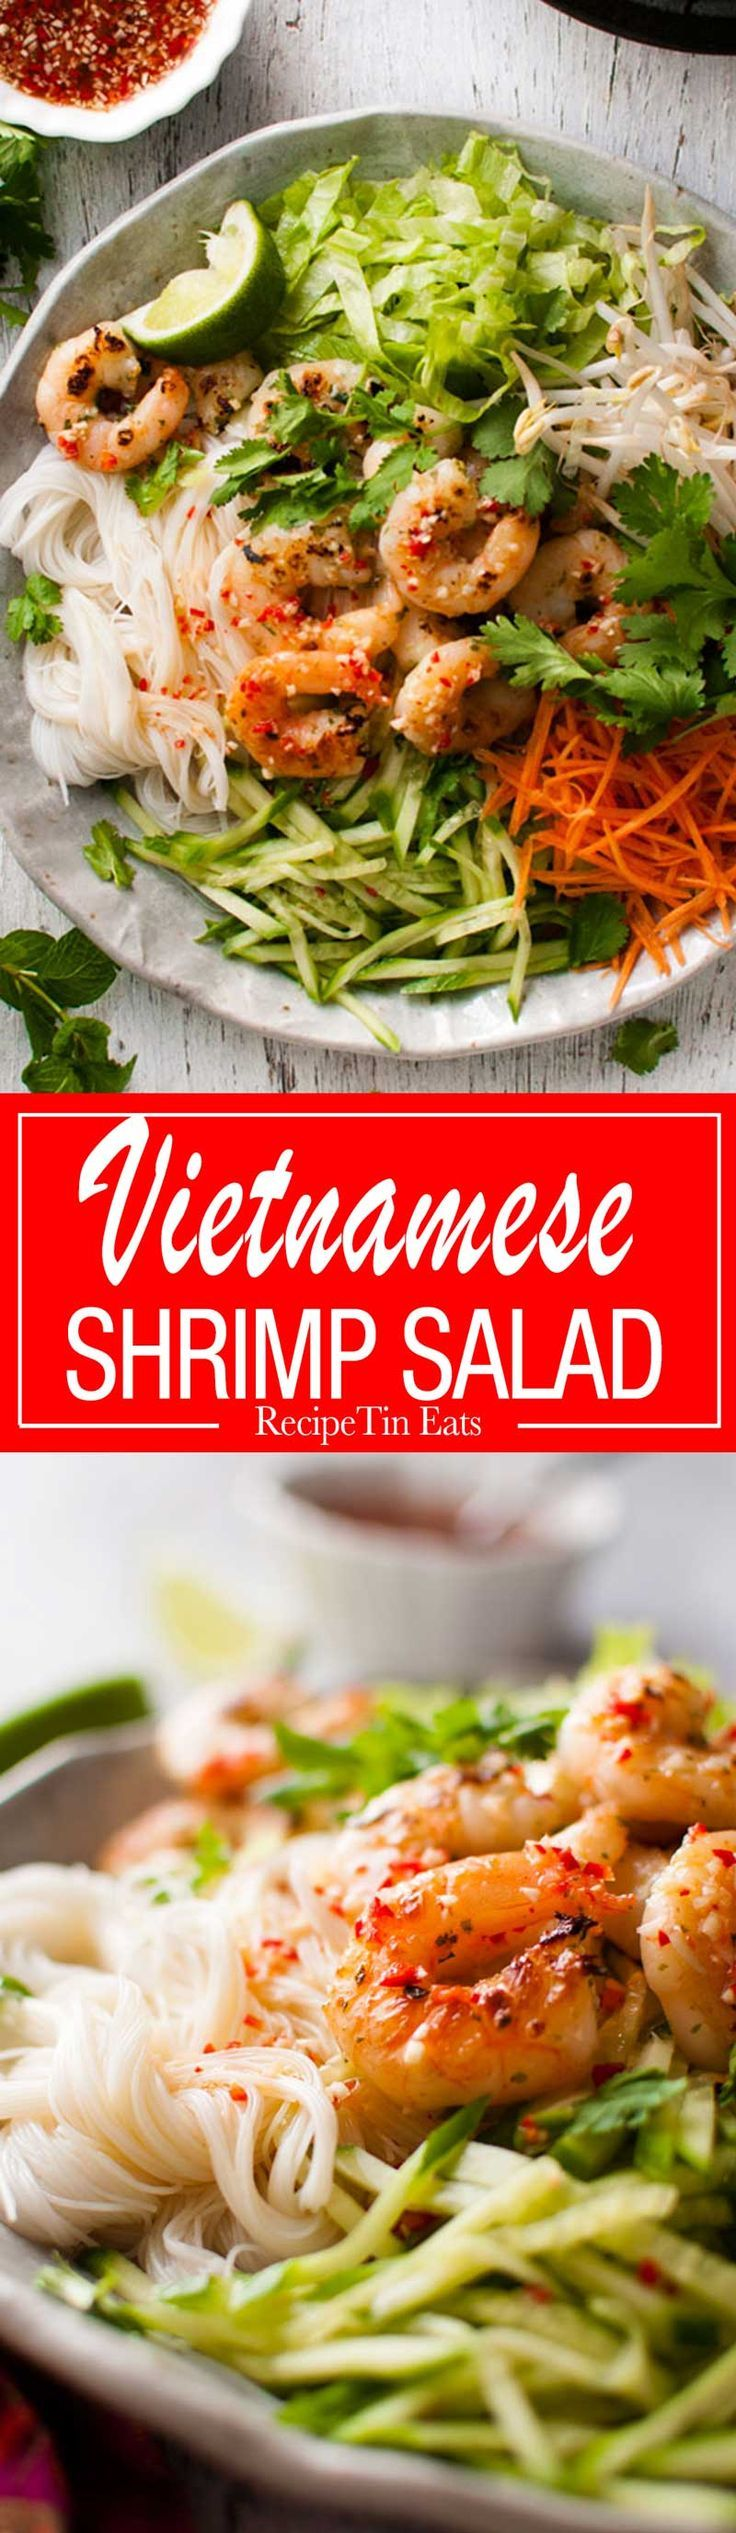 Vietnamese Shrimp Noodle Salad - lovely bright, zesty flavours, incredibly healthy, fast to make and an awesome dressing. http://www.recipetineats.com